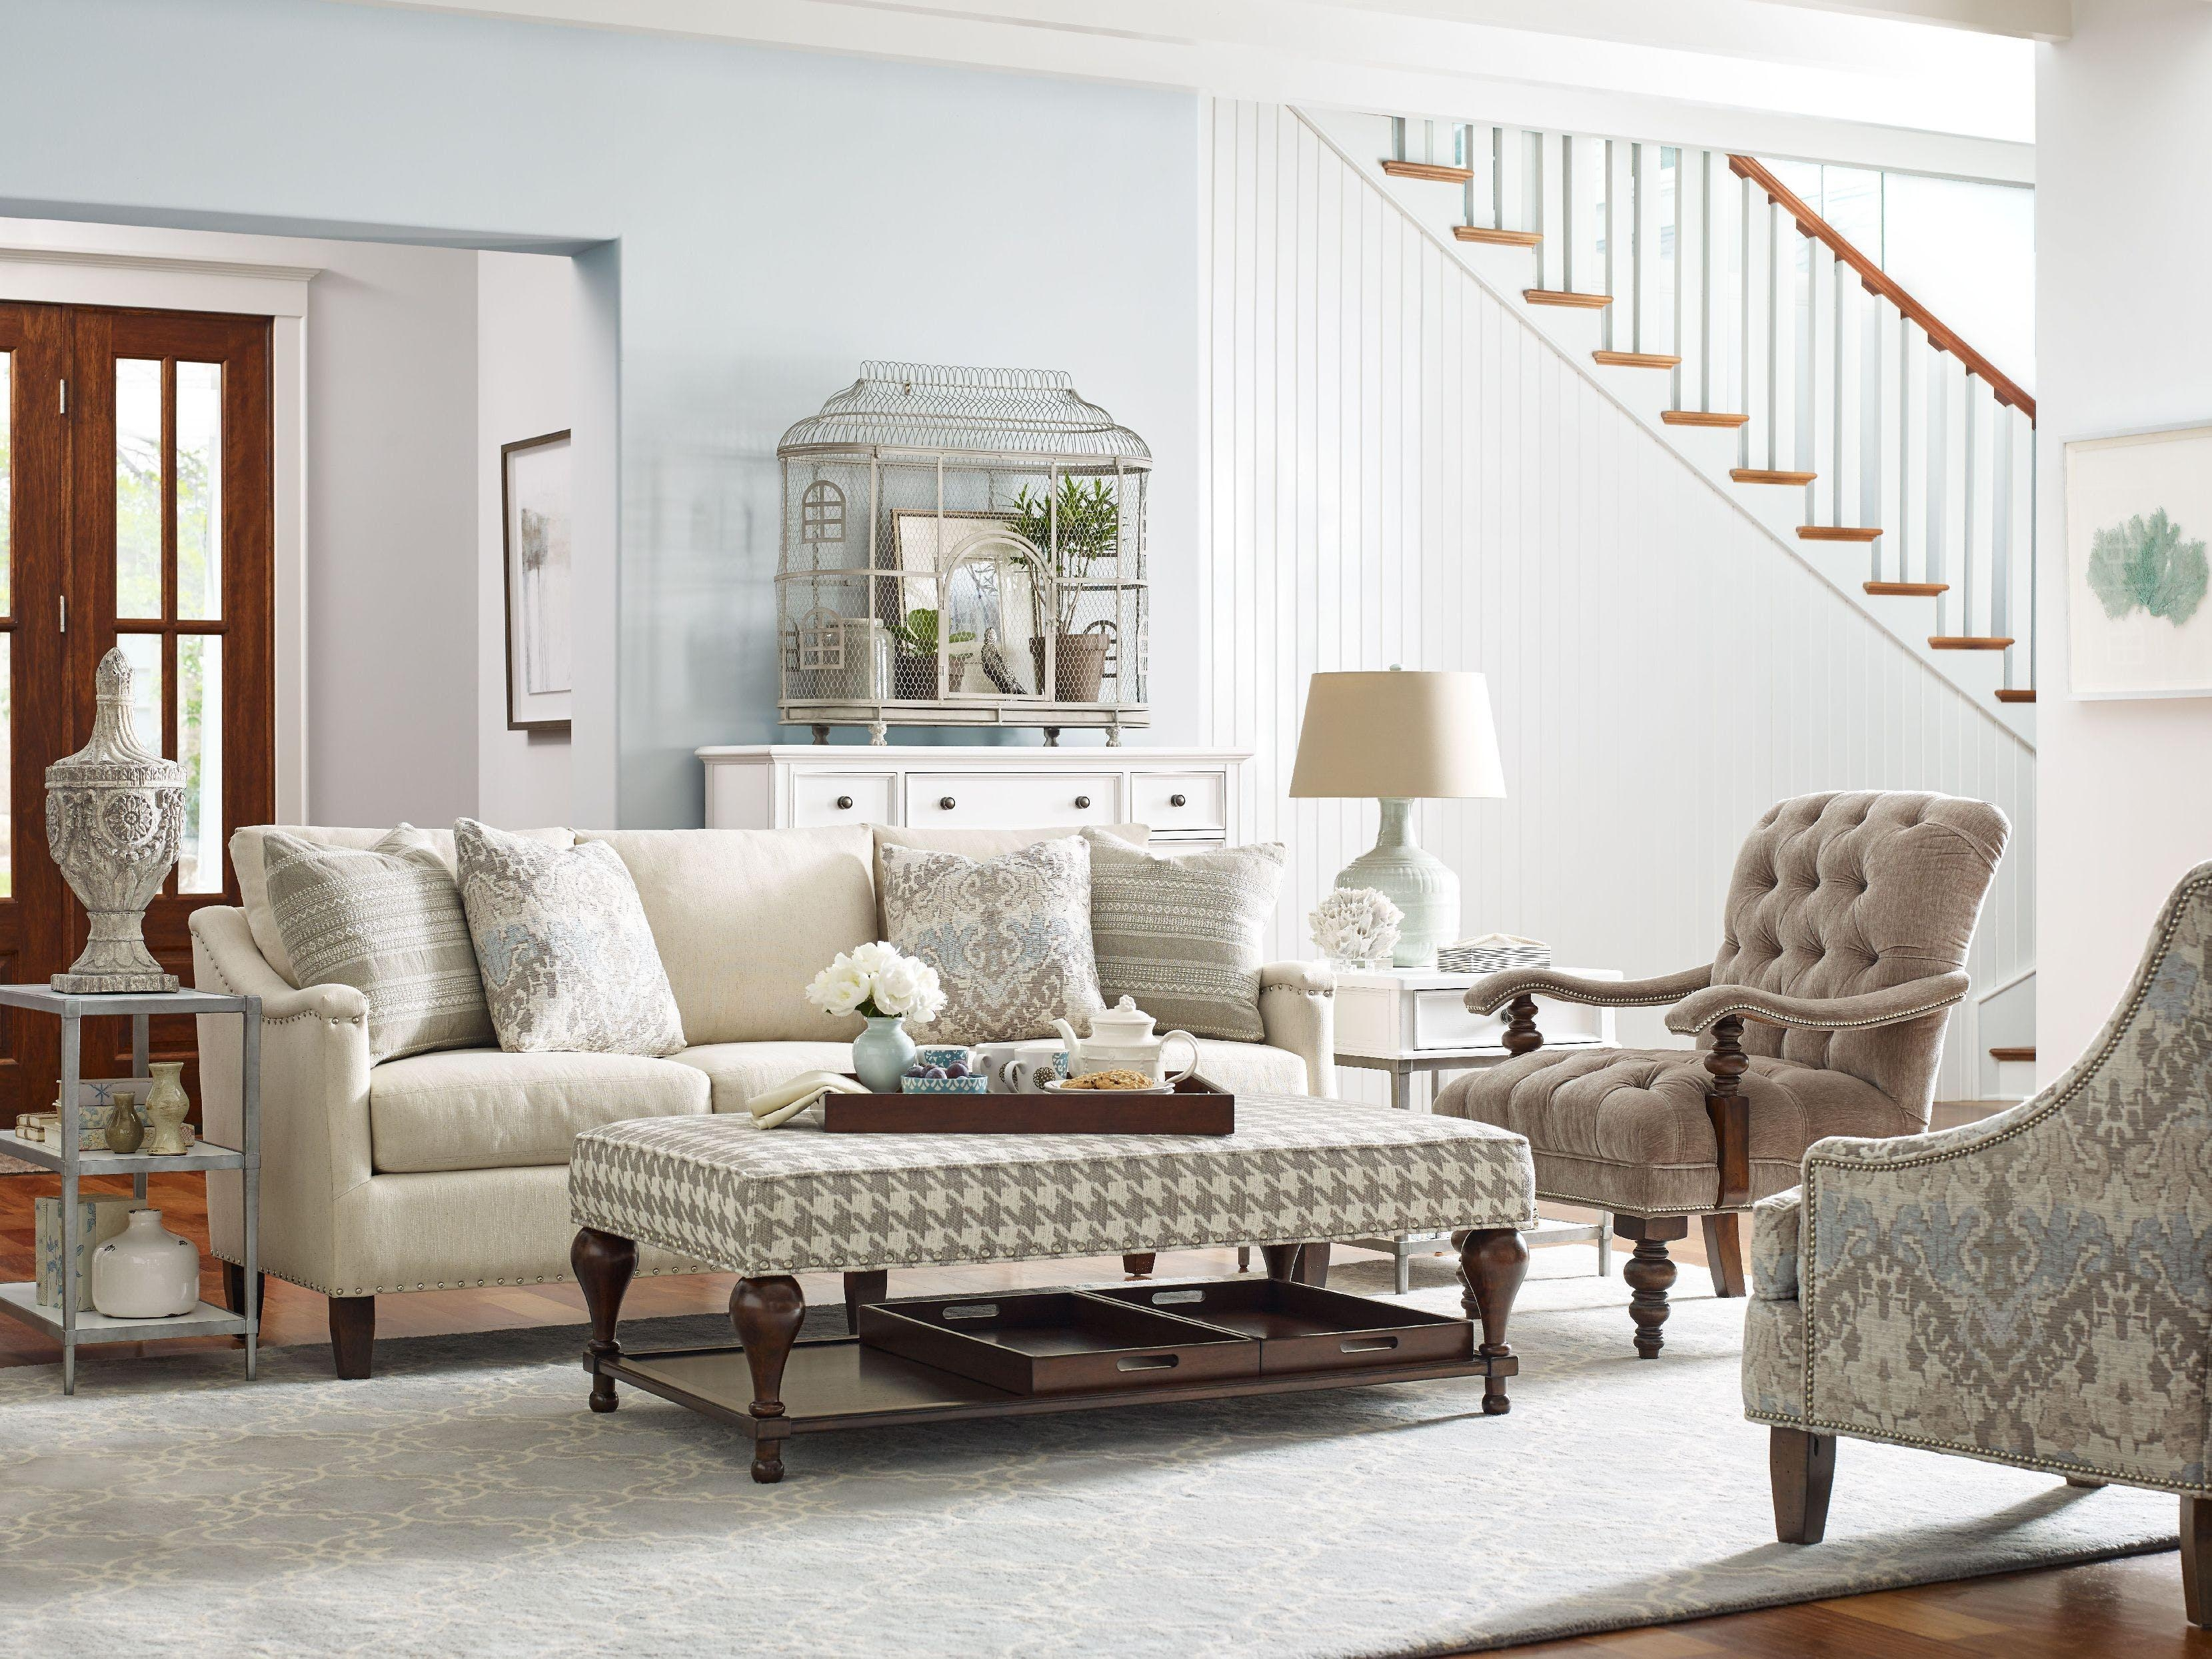 Furnitures: Fill Your Home With Luxury Craftmaster Furniture For With Craftsman Sectional Sofa (Image 13 of 15)